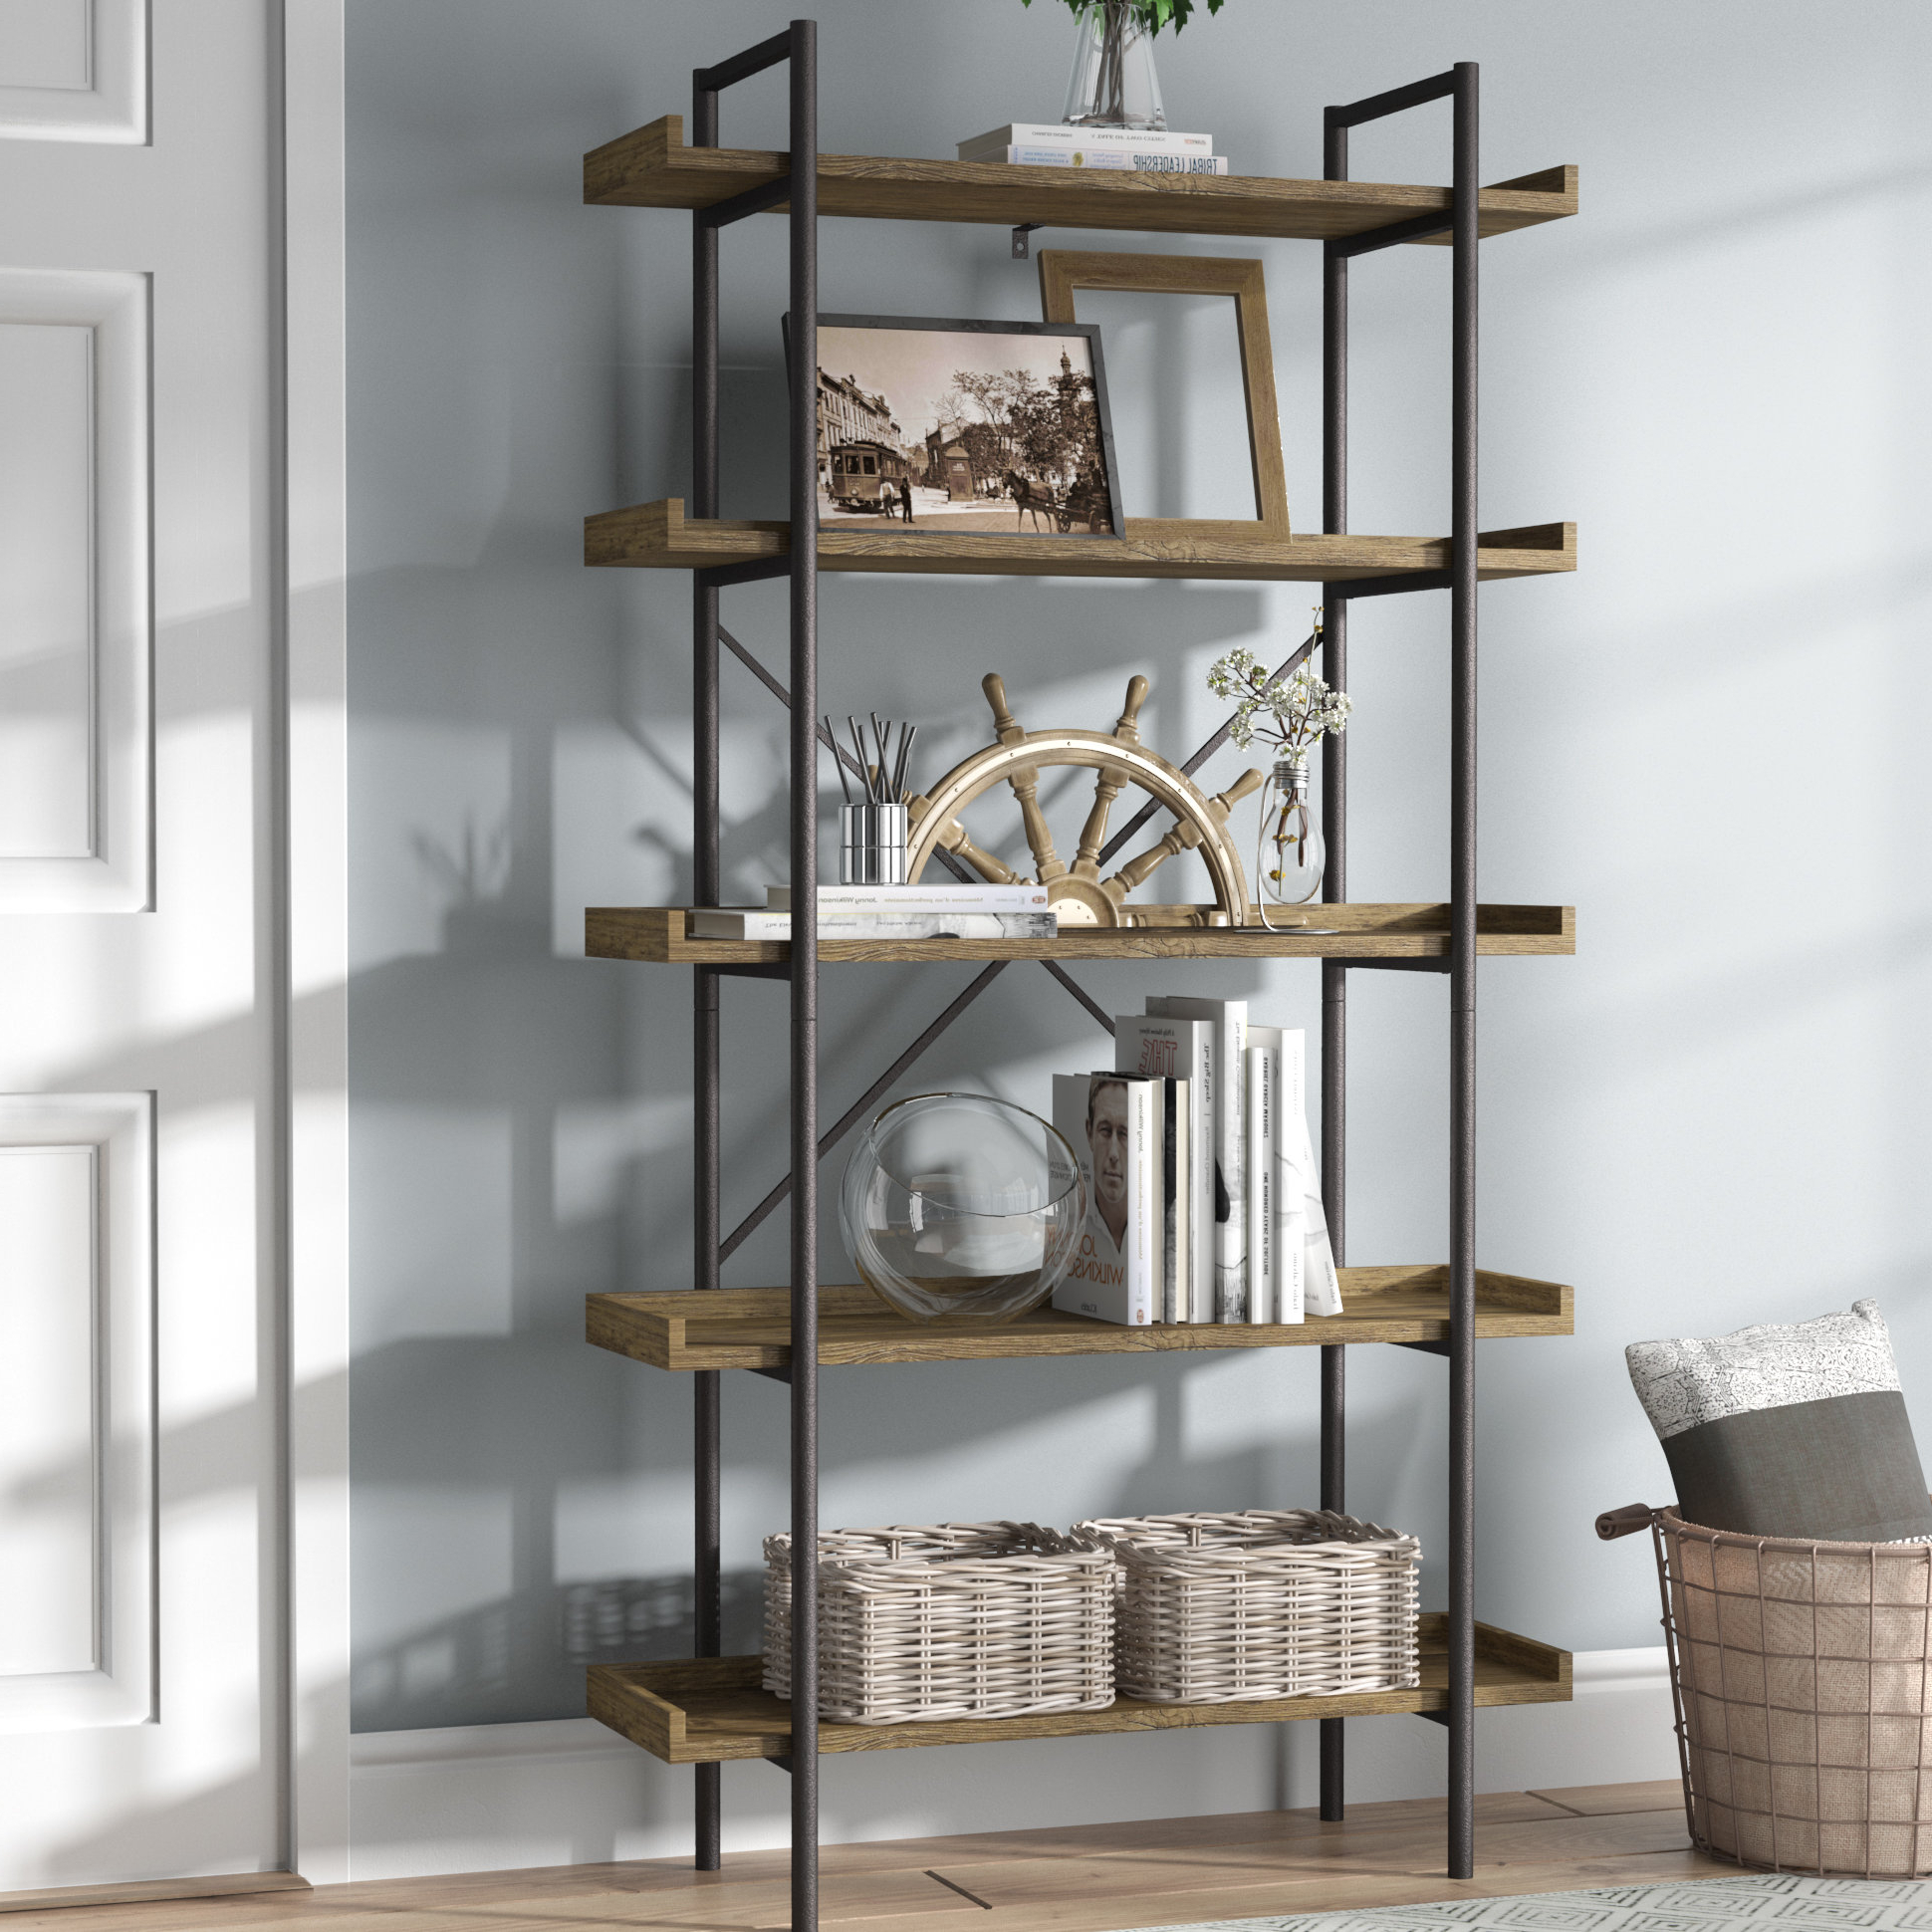 Swindell Etagere Bookcase With Regard To Current Epineux Etagere Bookcases (View 5 of 20)